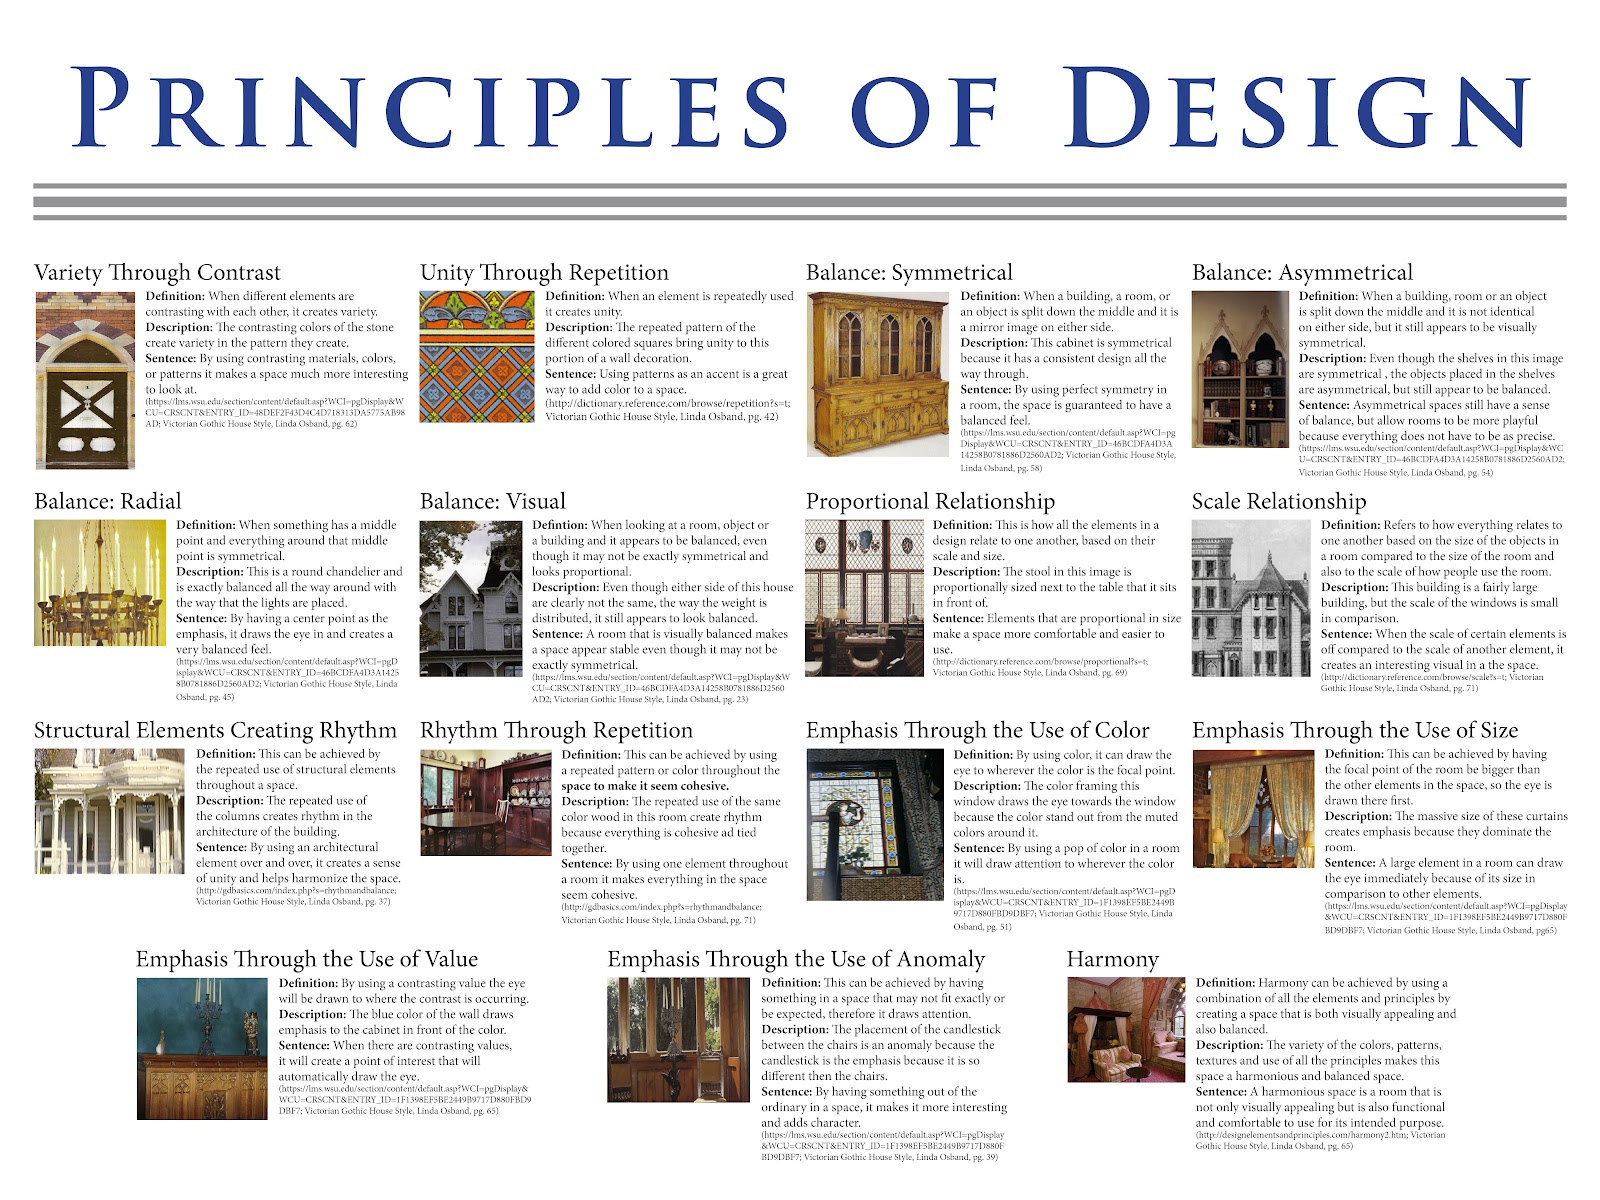 Elements And Principles Of Design Photography : Principles of design visual communication